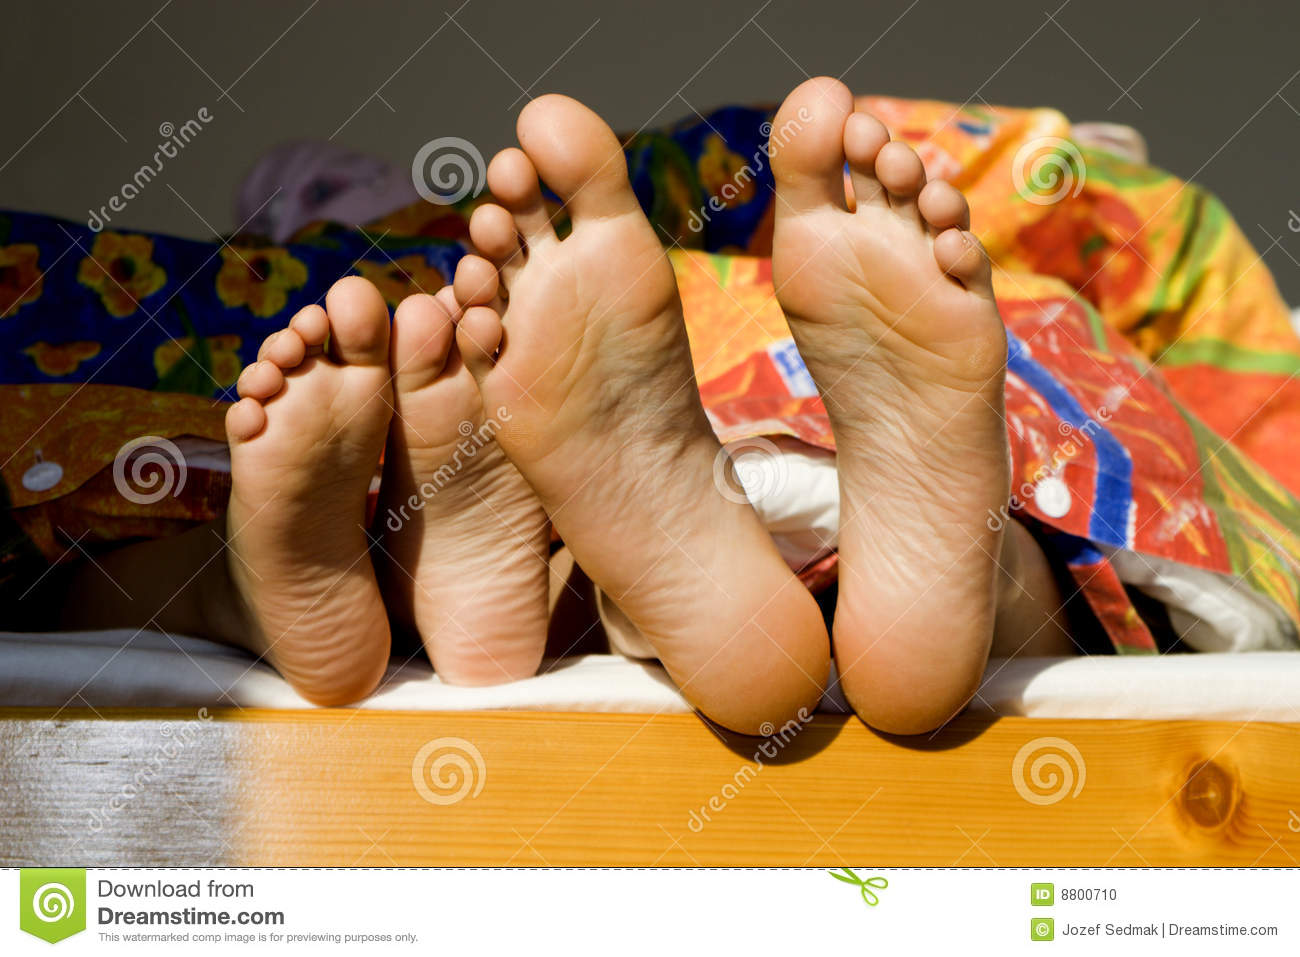 Curious baby looking at mother's feet in bed - Stock Photos ...